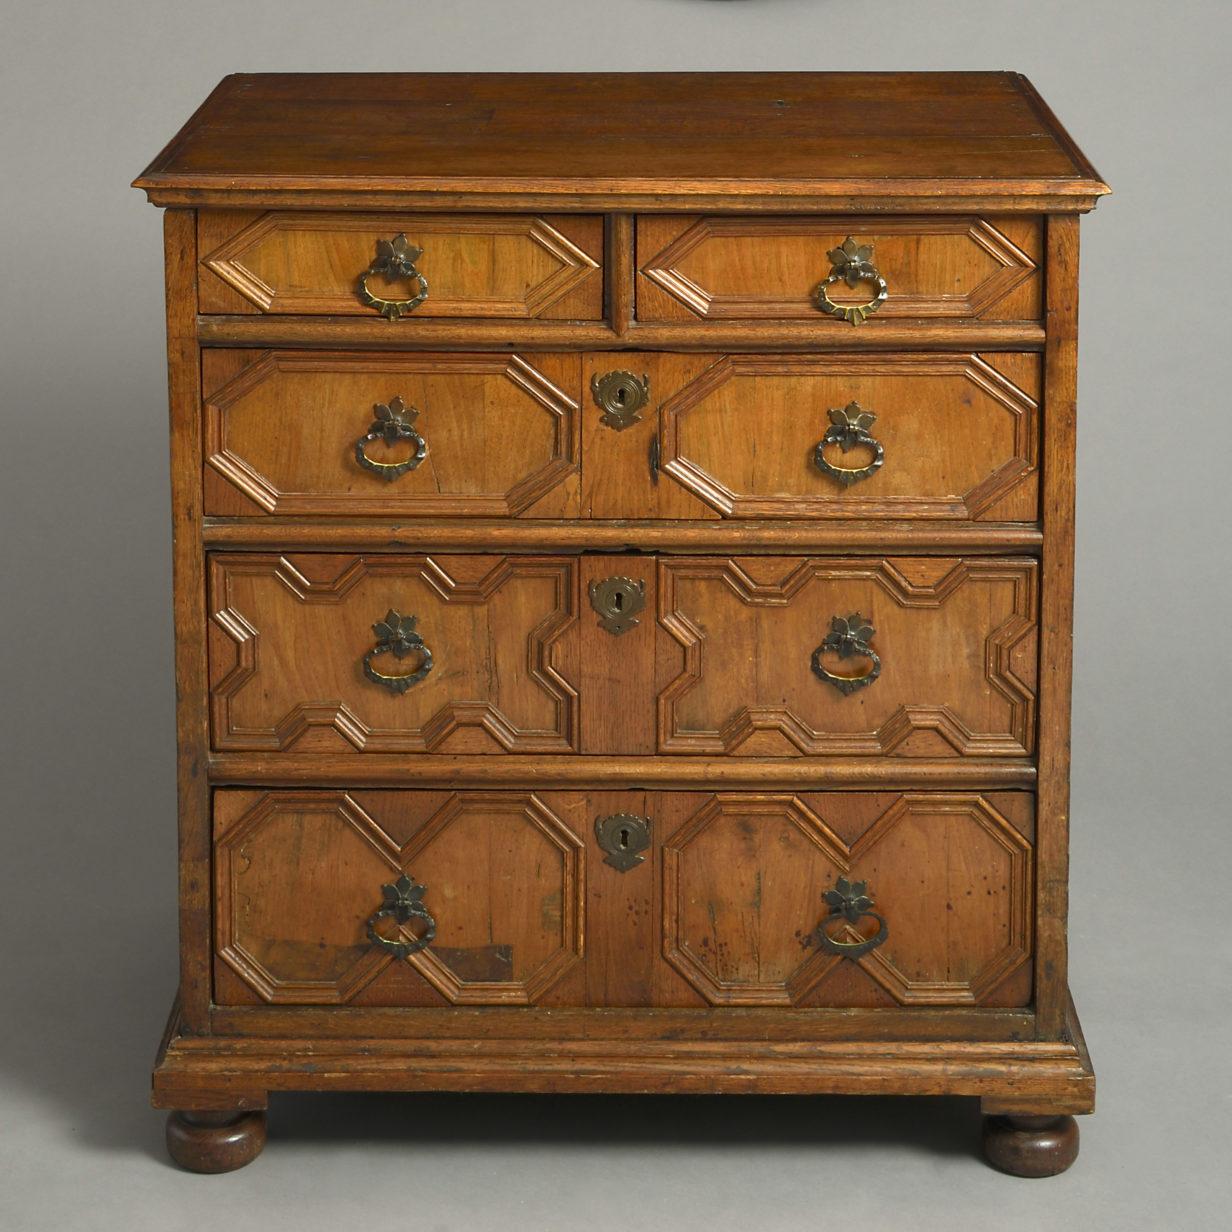 Charles II Geometric Chest